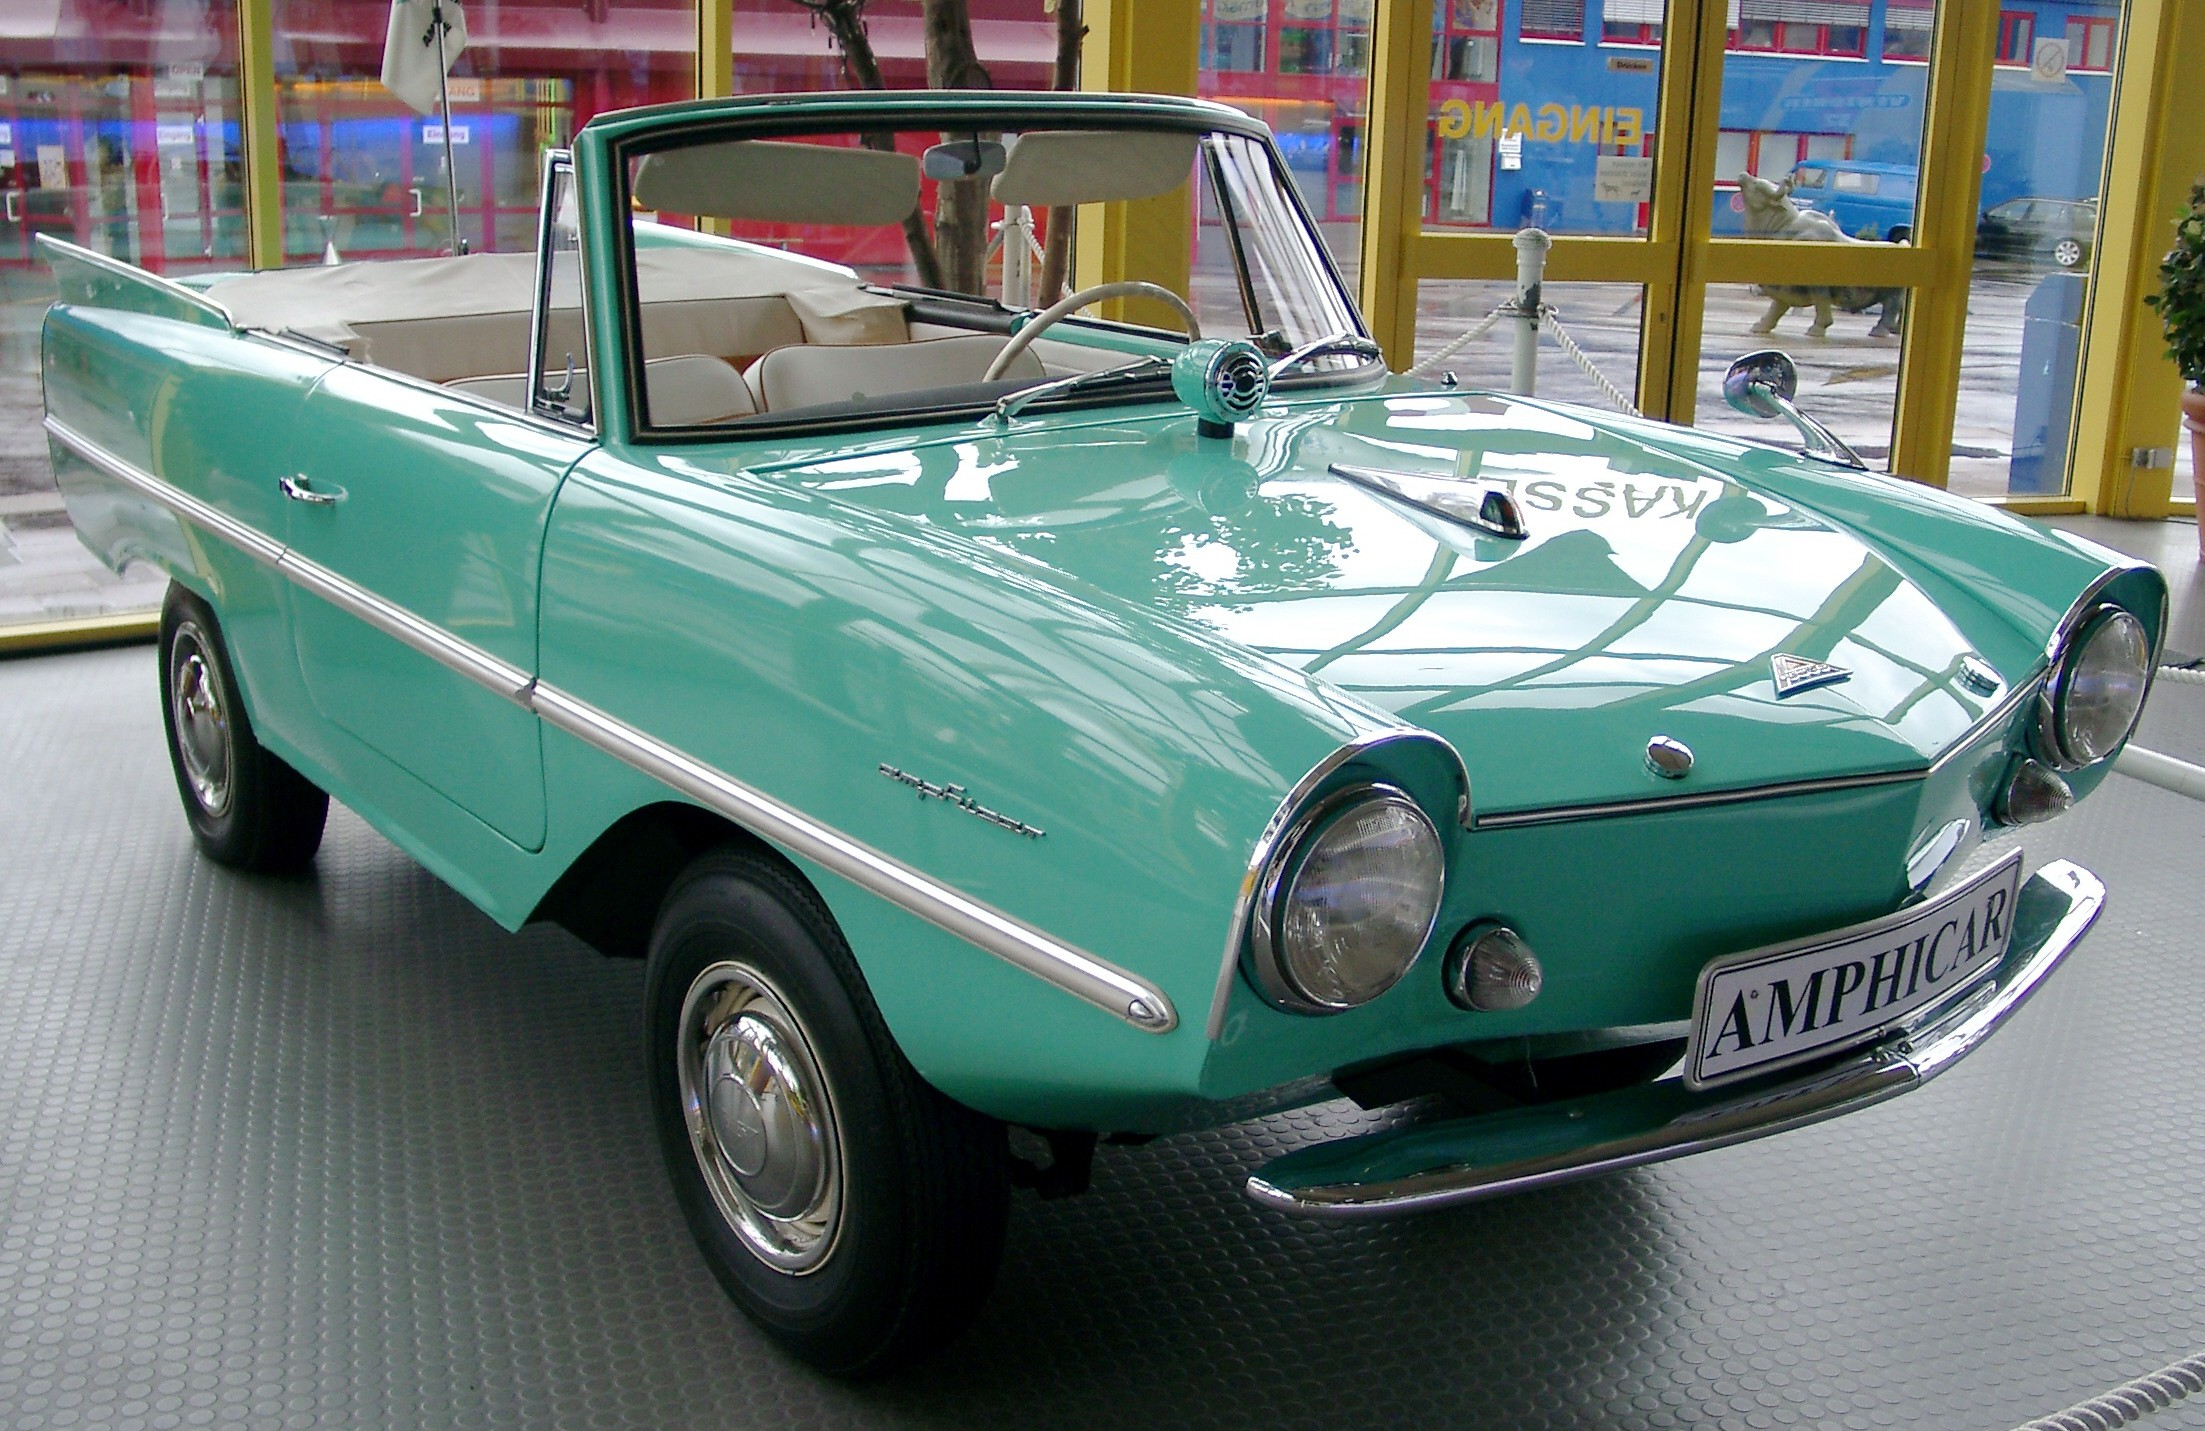 Amphicar For Sale Craigslist Autos Post